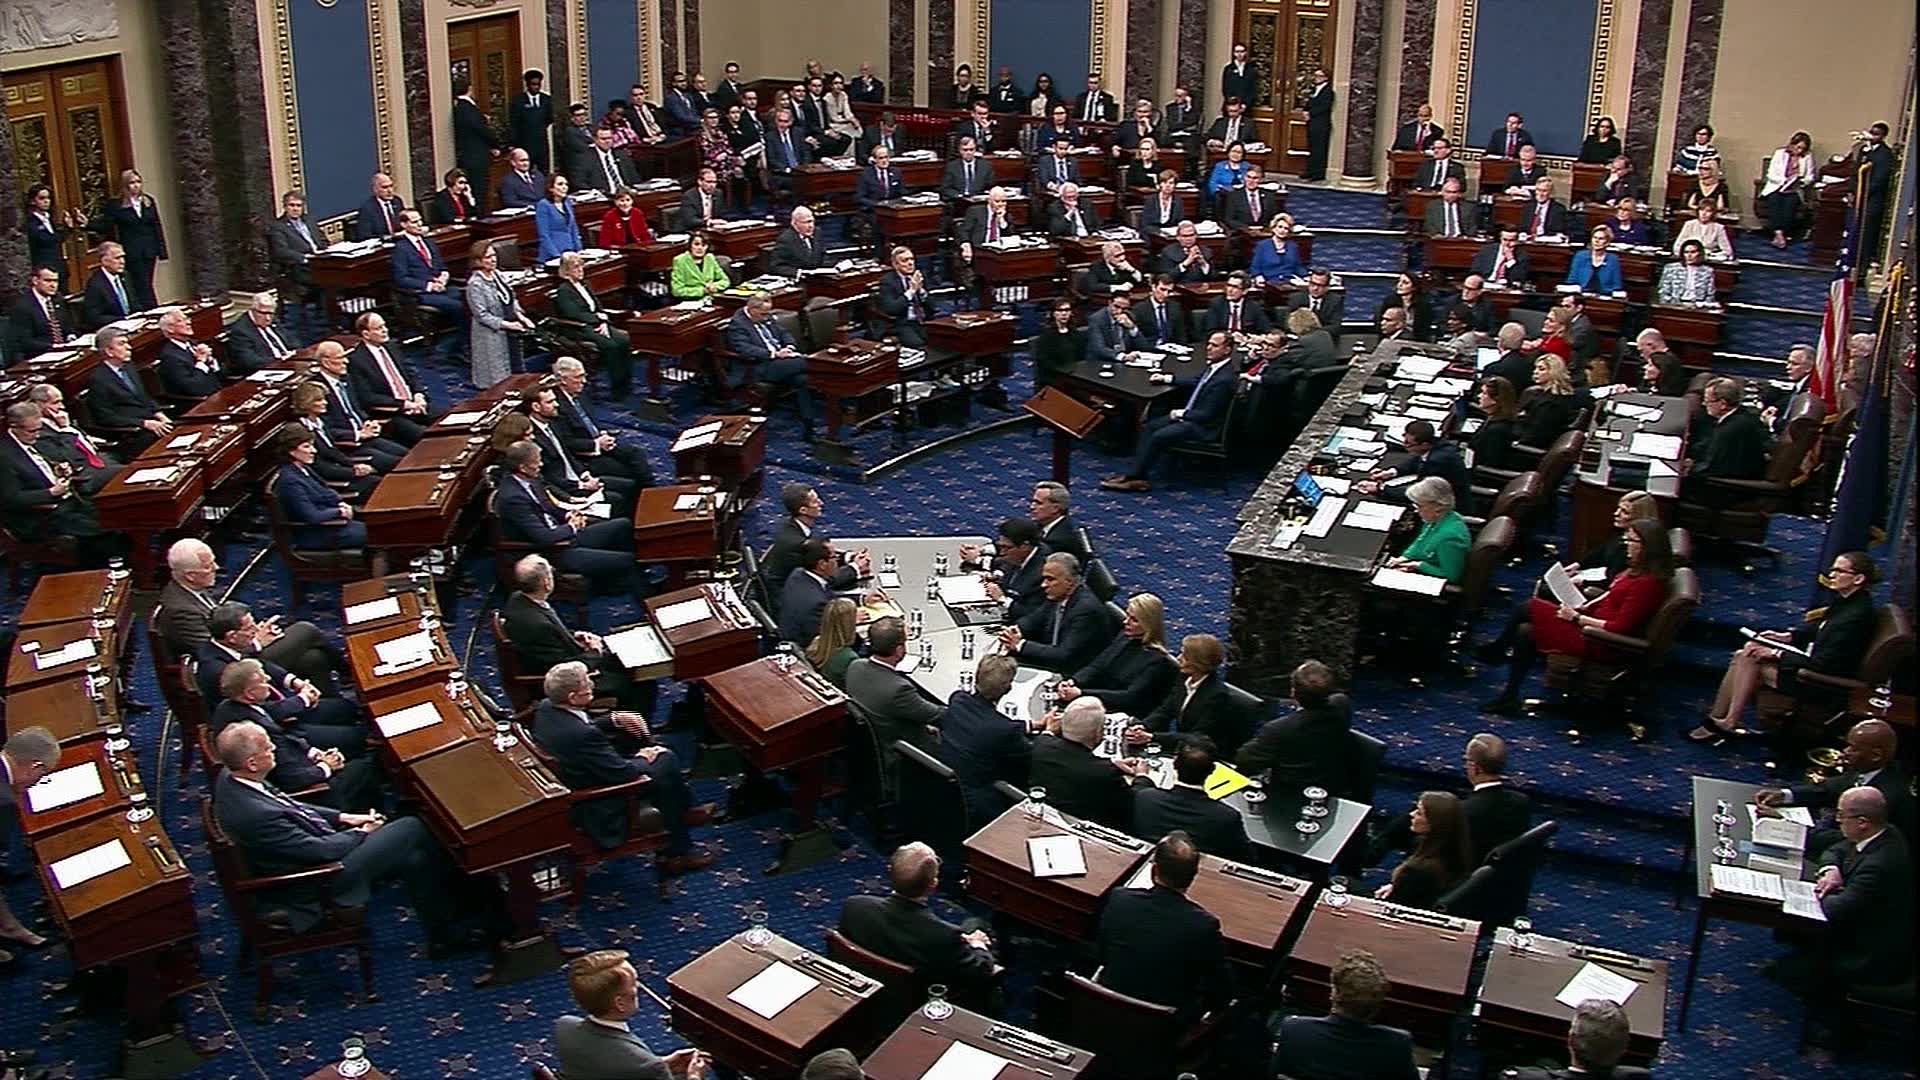 Senate votes to impeach President Trump